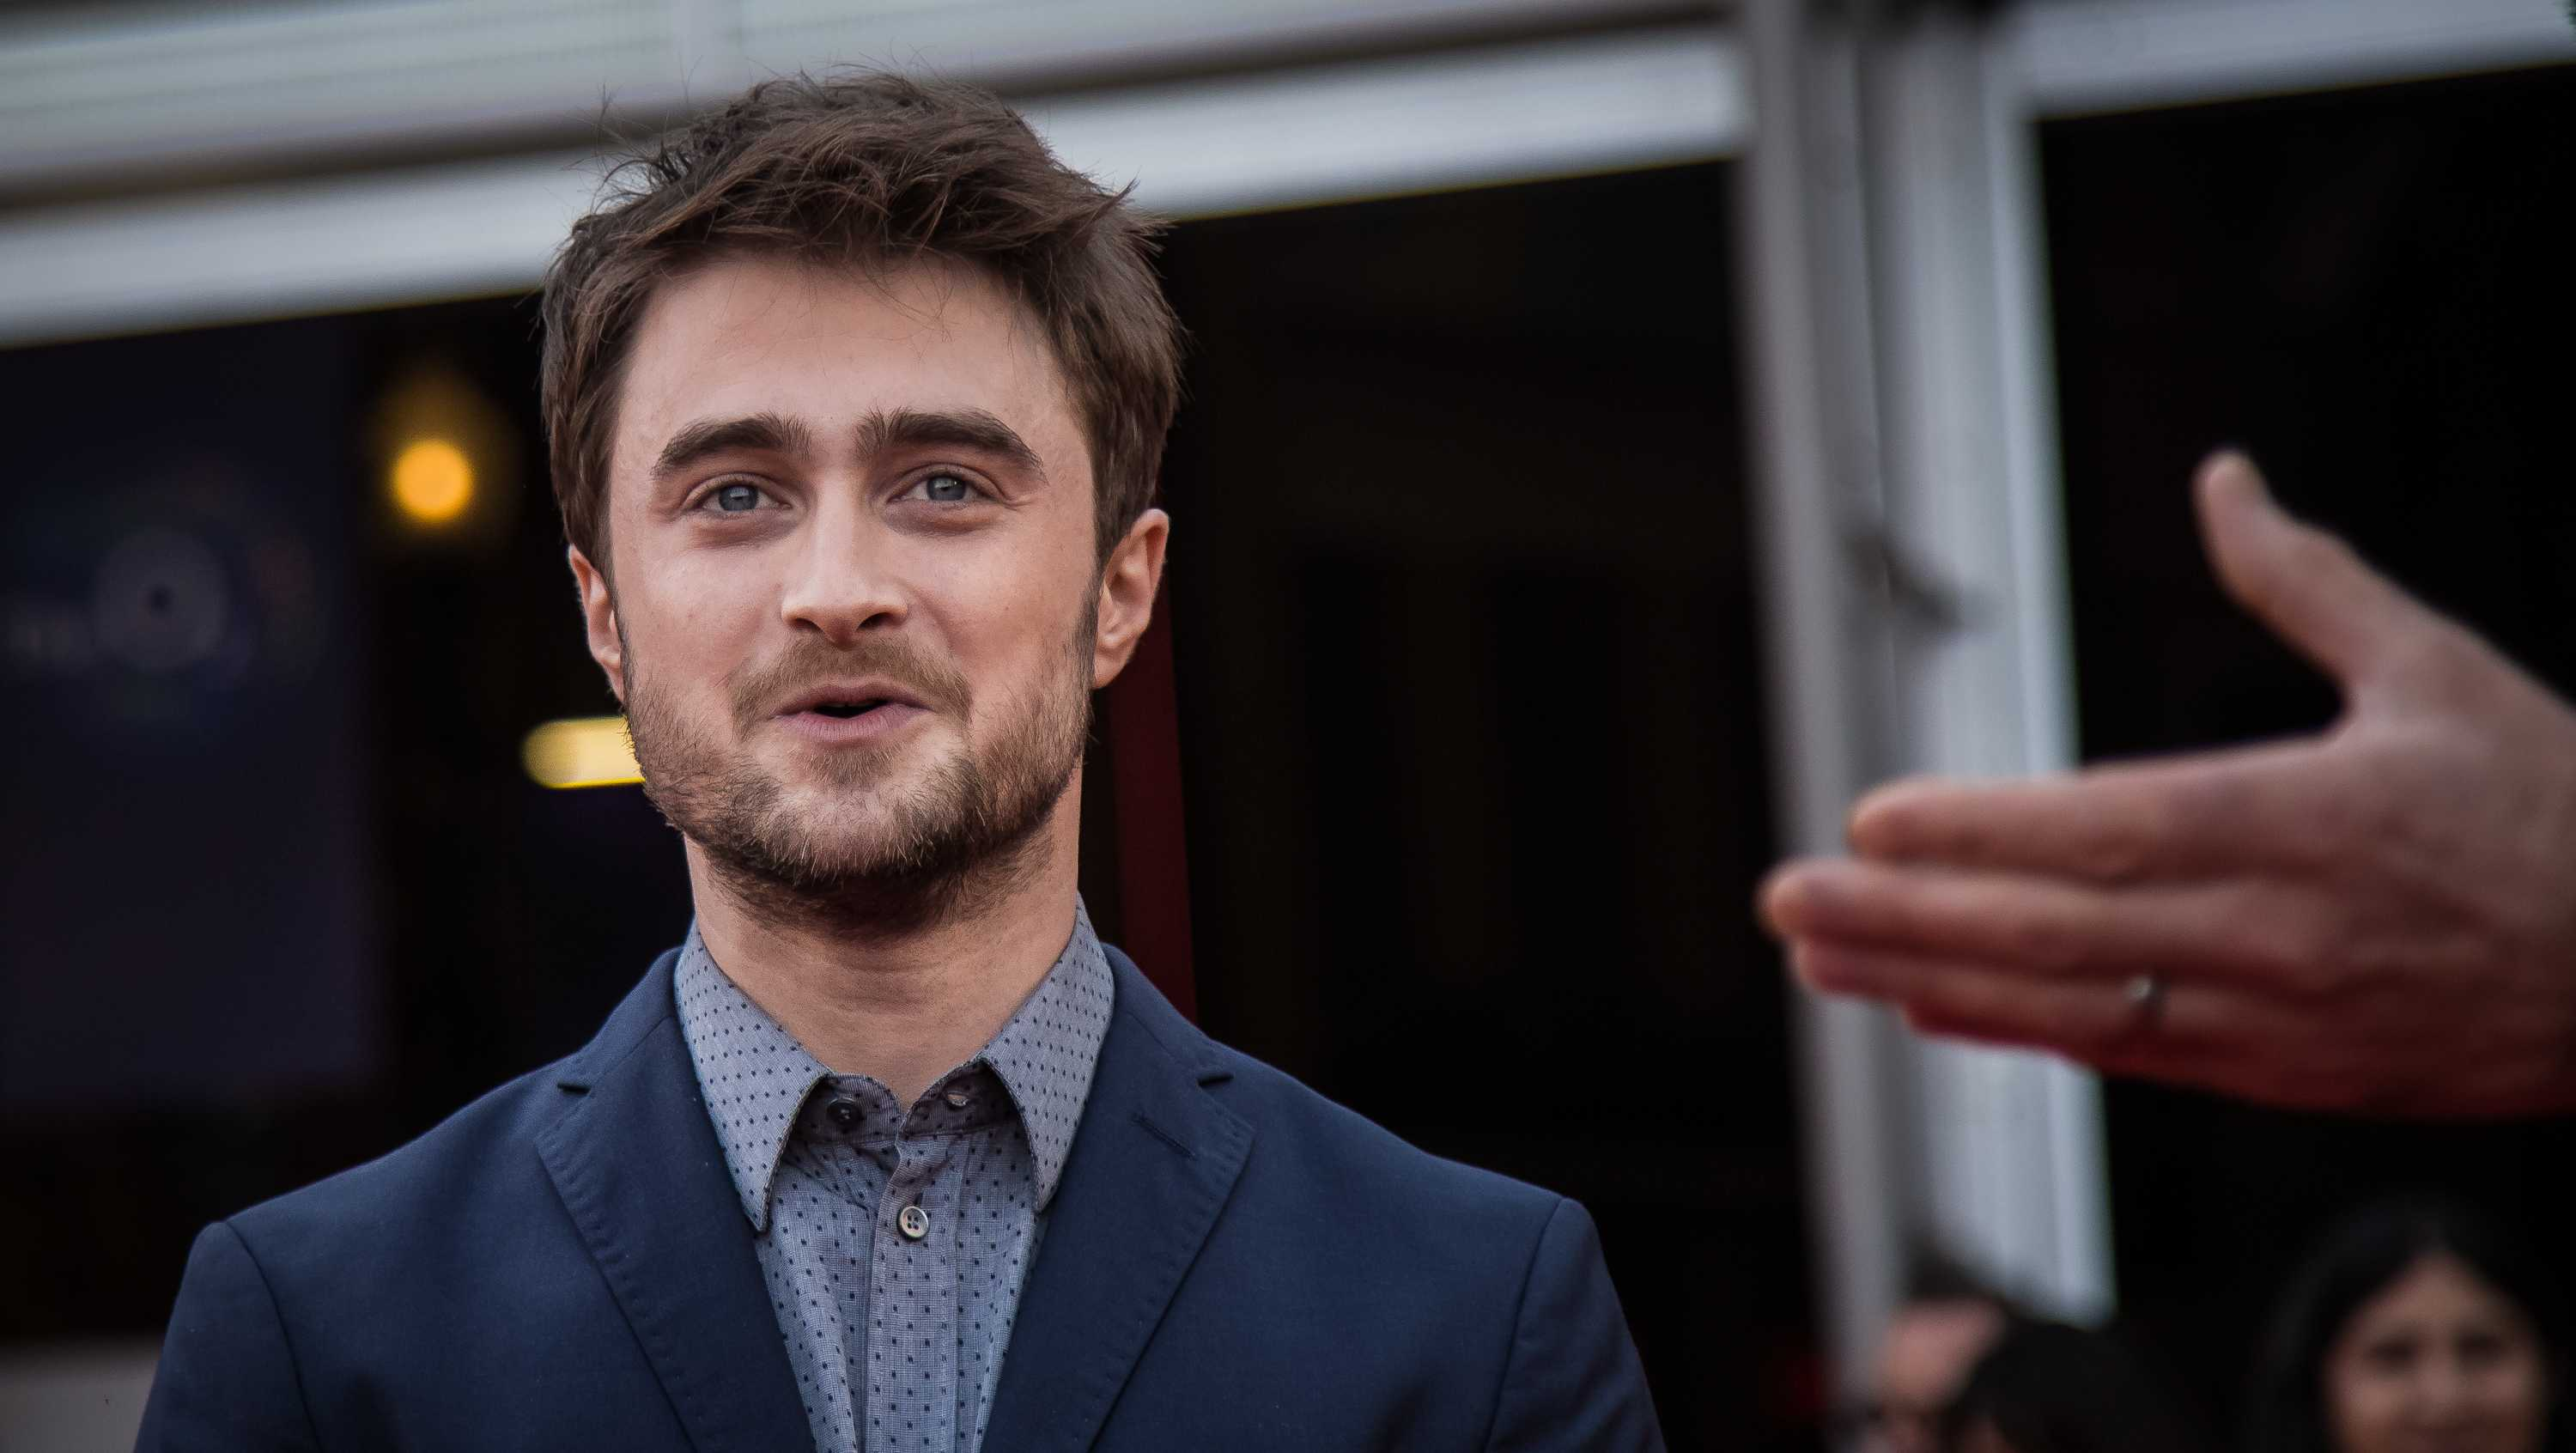 Daniel Radcliffe poses for photographers upon arrival at the Empire Live event, in London, Friday, Sept. 23, 2016.